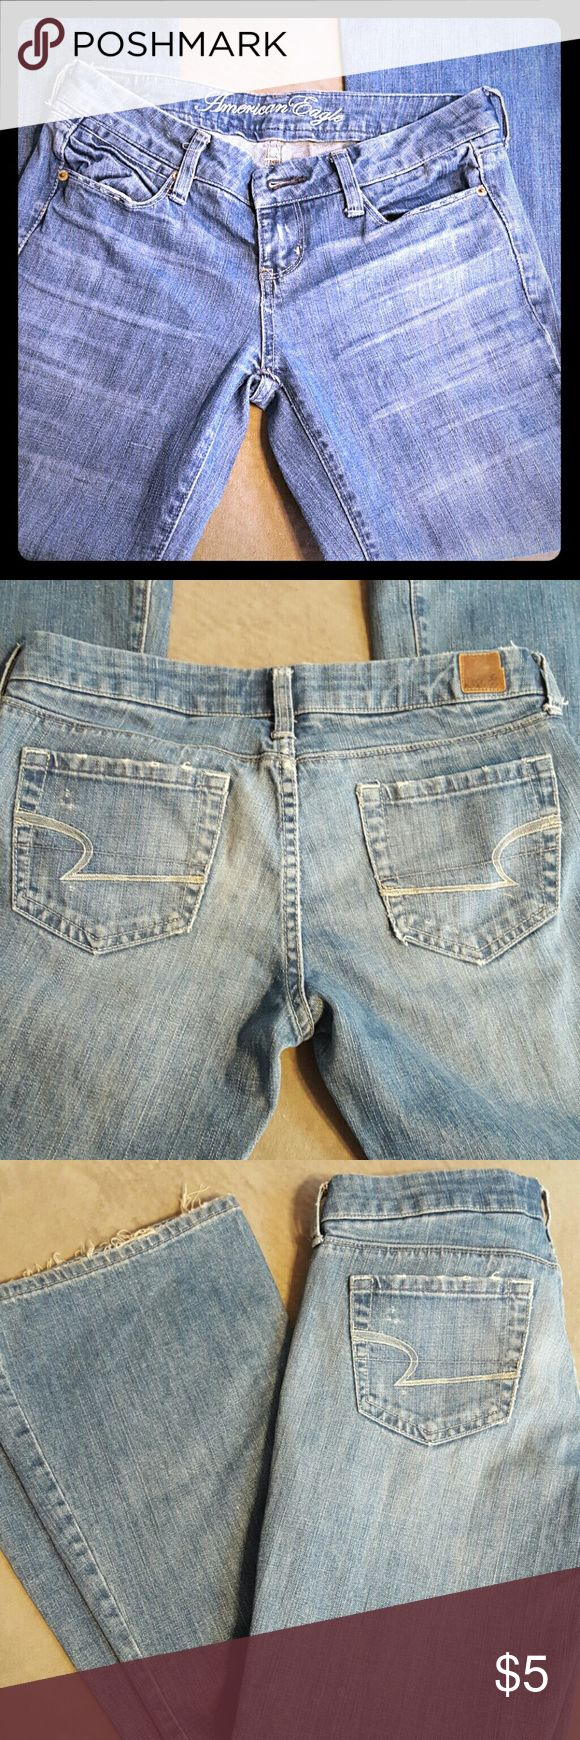 💥SaLe!!💥 American Eagle jeans only $5!! American eagle jeans only $5!! What a steal! Worn lots of times yet still in decent shape. Woooowhoooooo!! American Eagle Outfitters Jeans